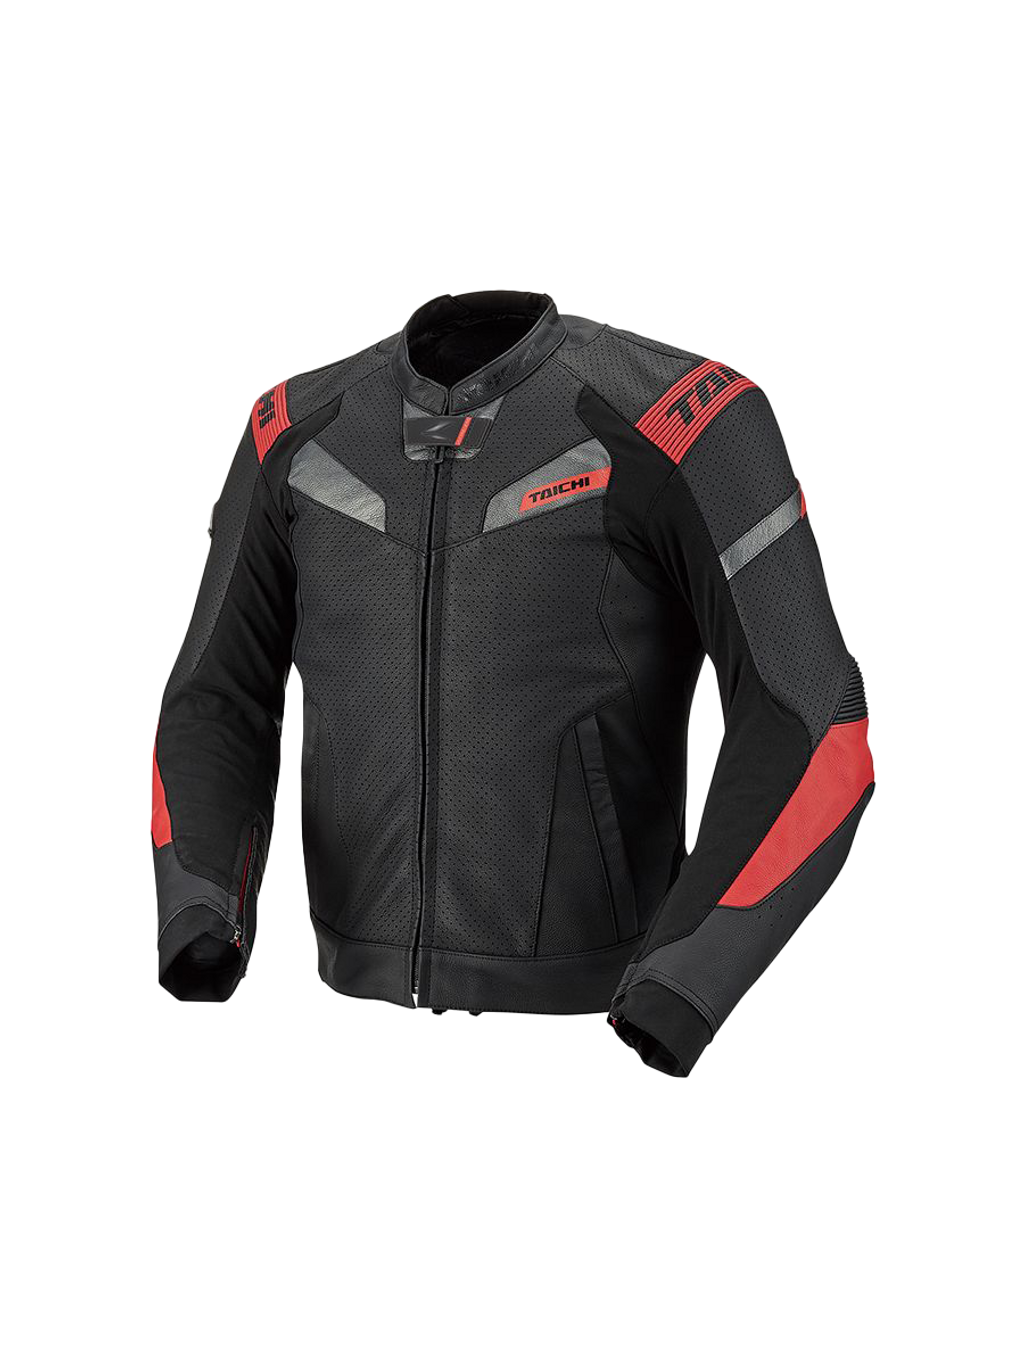 90 RS TAICHI RSJ833 GPX RAPTOR LEATHER JACKET BLACK RED (2).png